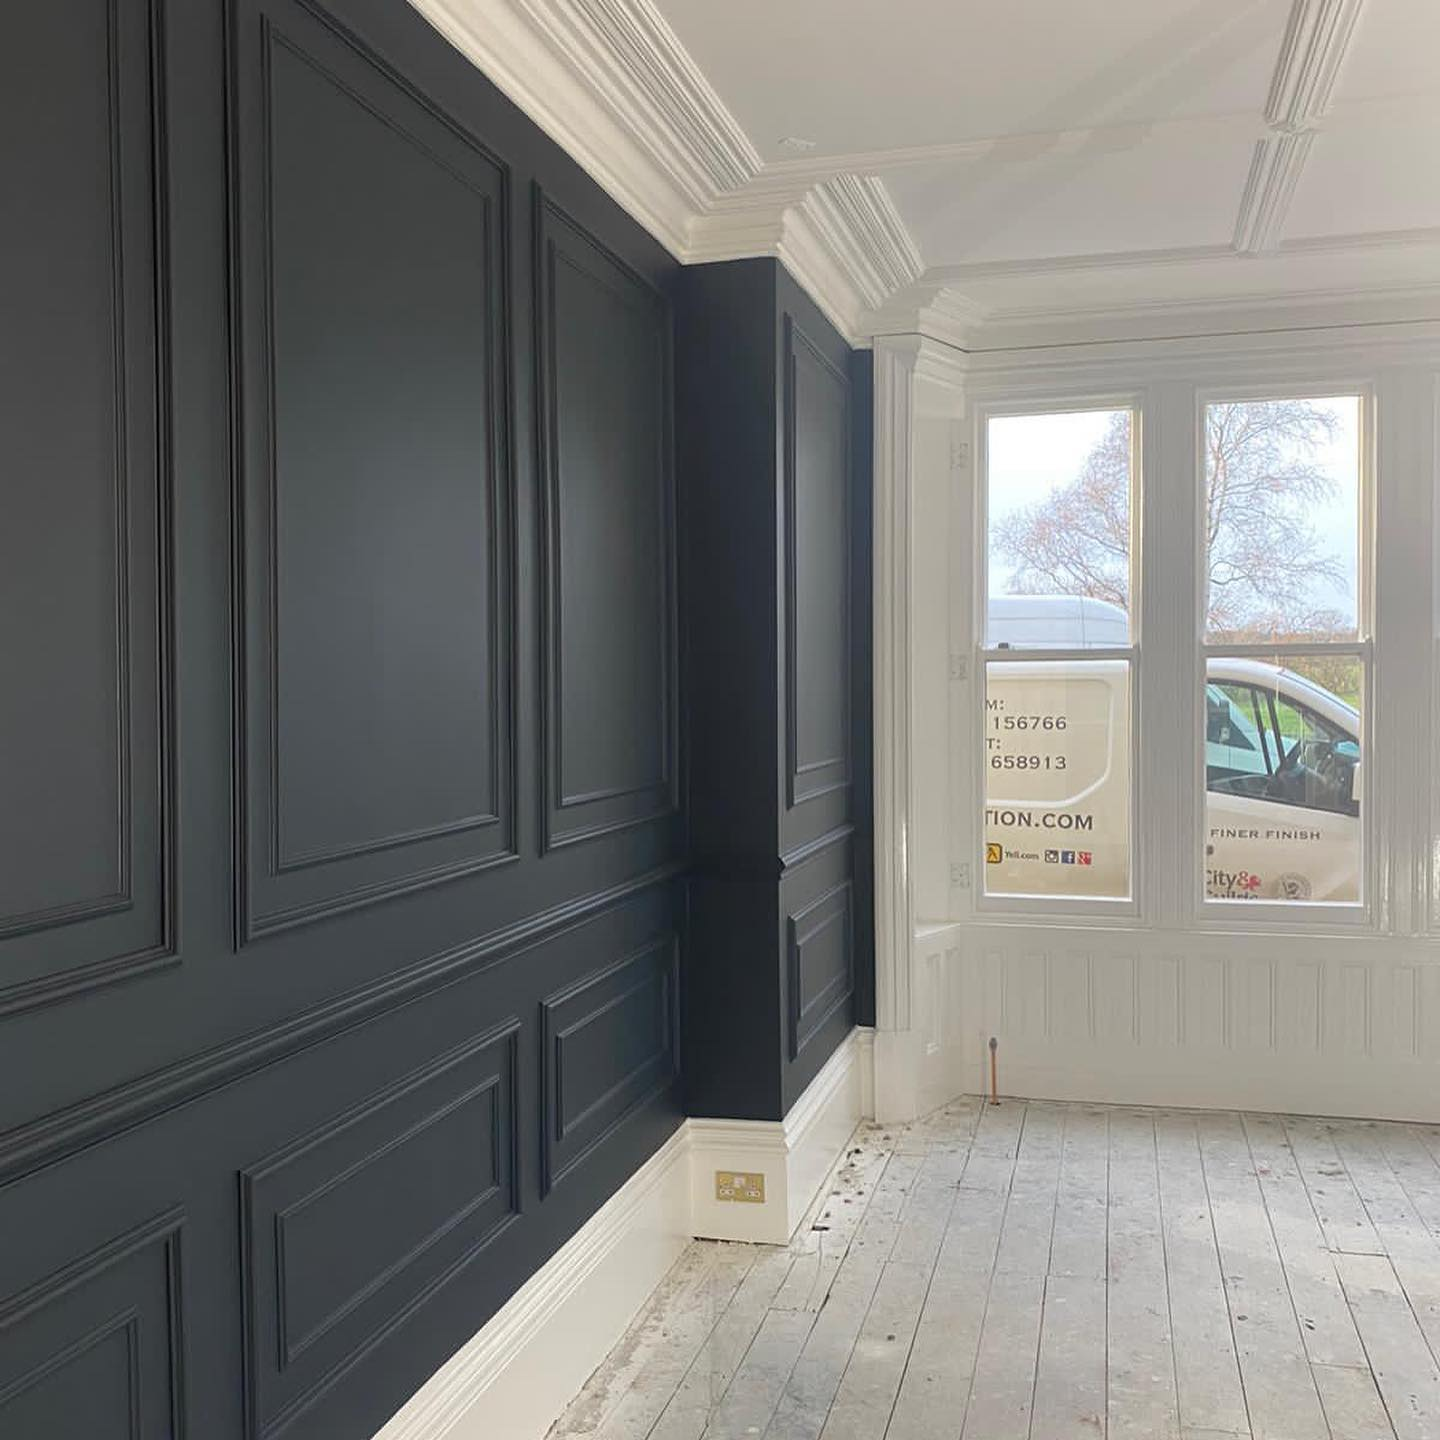 Wooden wall paneling painted black and white